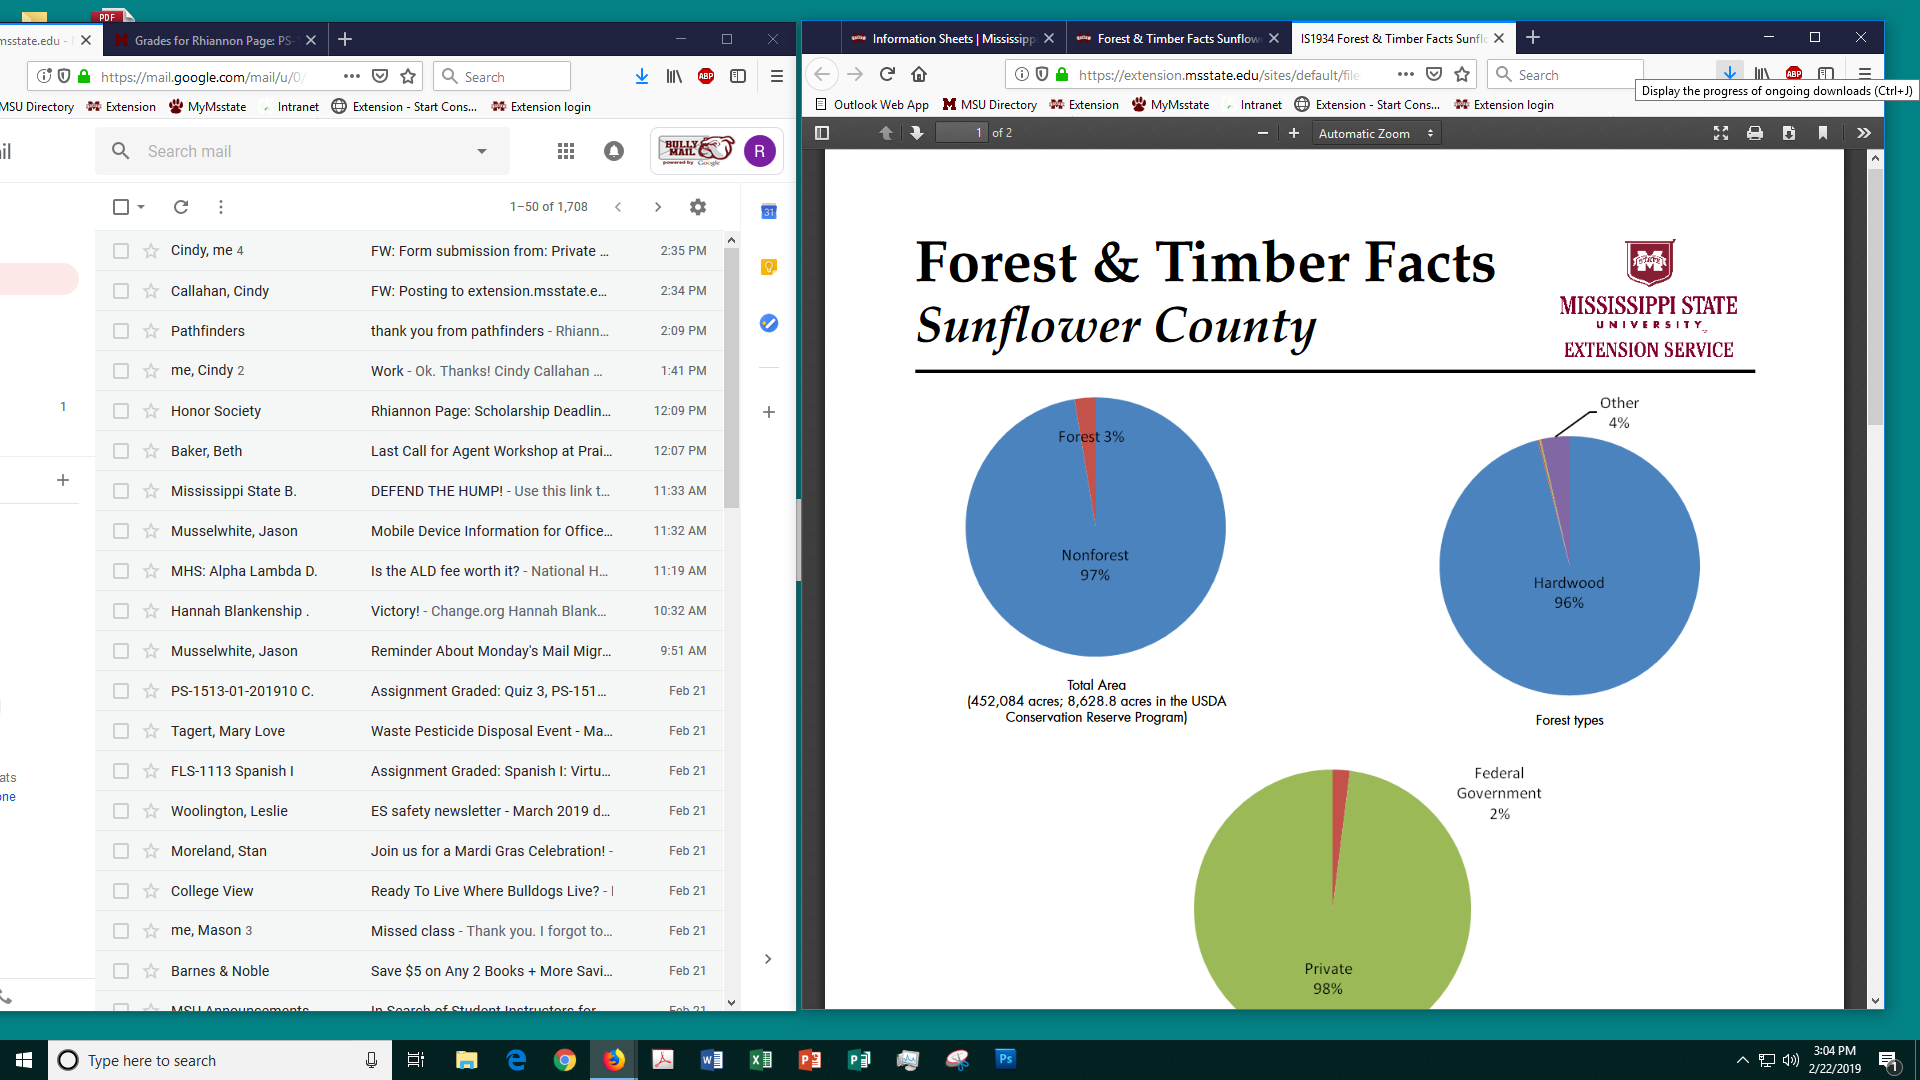 Forest & Timber Facts Sunflower County | Mississippi State